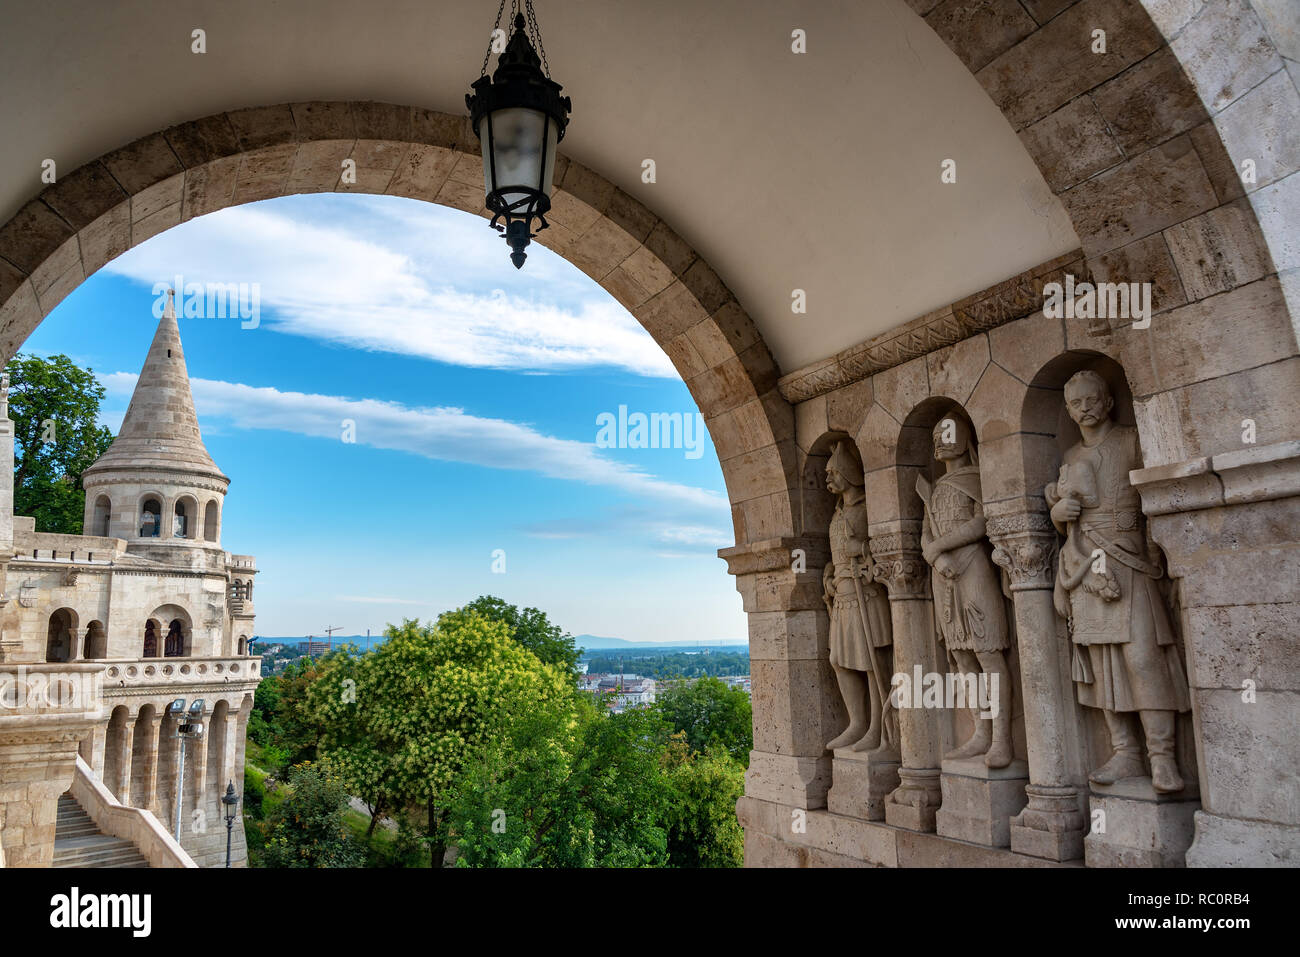 Statues decorating Fishermans Bastion in Budapest, Hungary Stock Photo